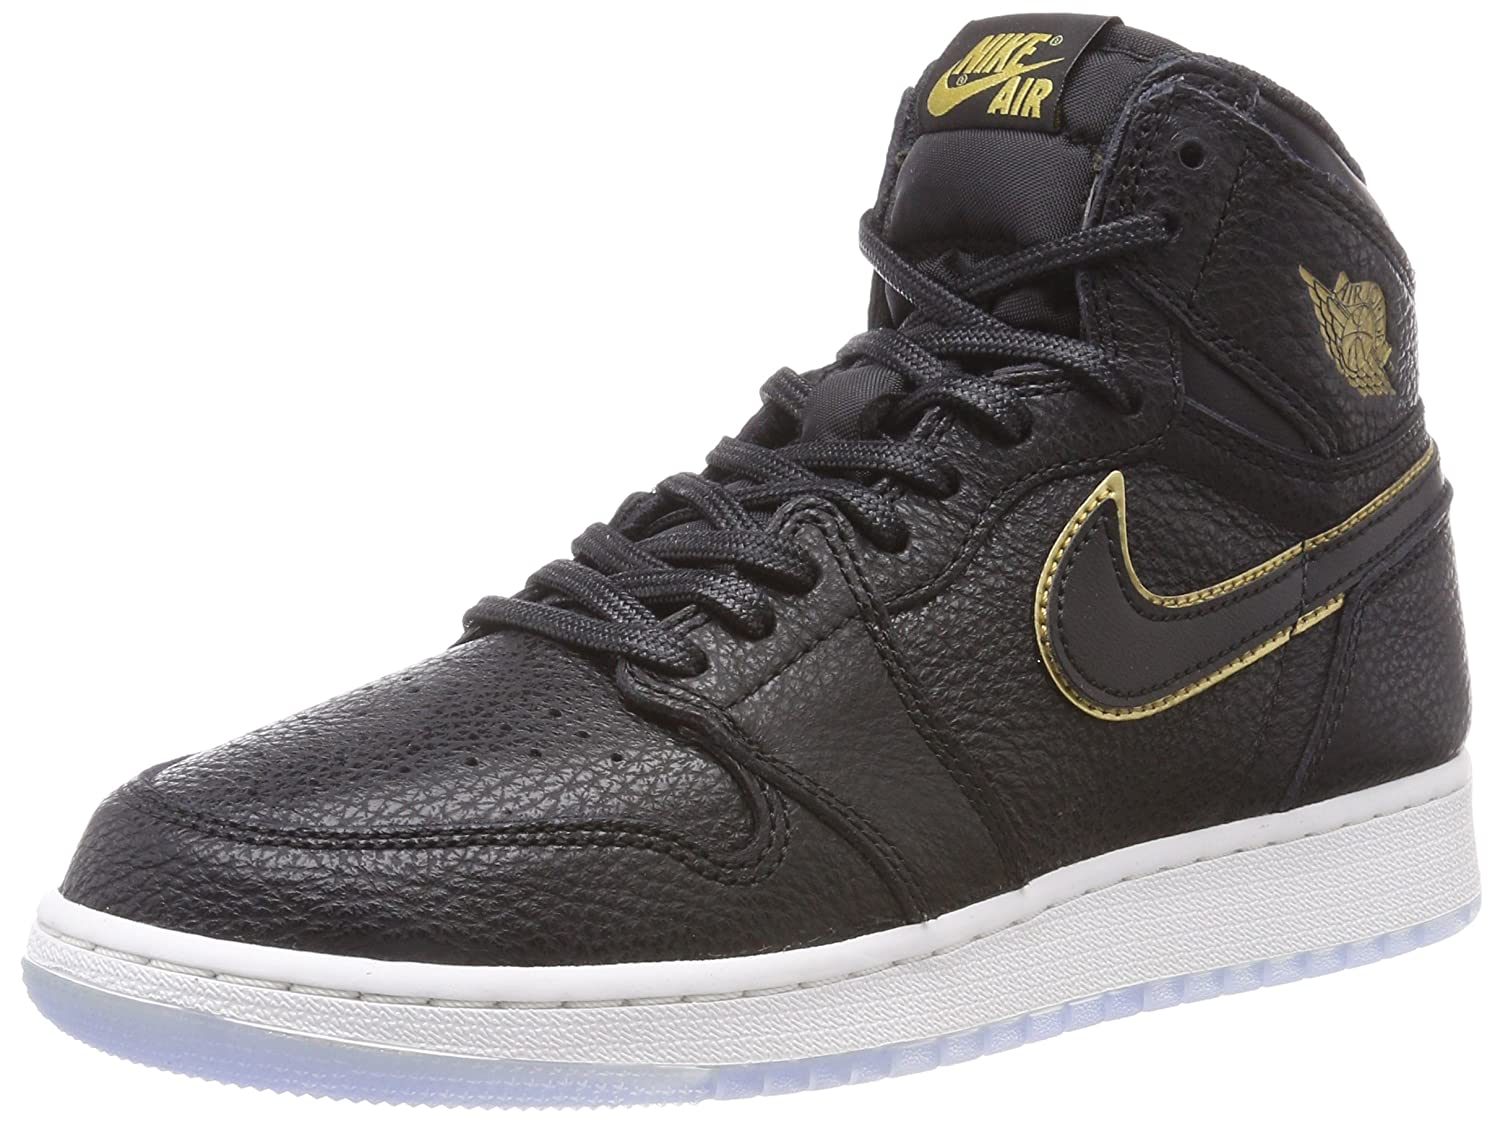 cdd7184466d Amazon.com | Jordan 1 Retro HIGH OG (GS) 'City of Flight' - 575441-031 -  Size - 7Y | Fashion Sneakers